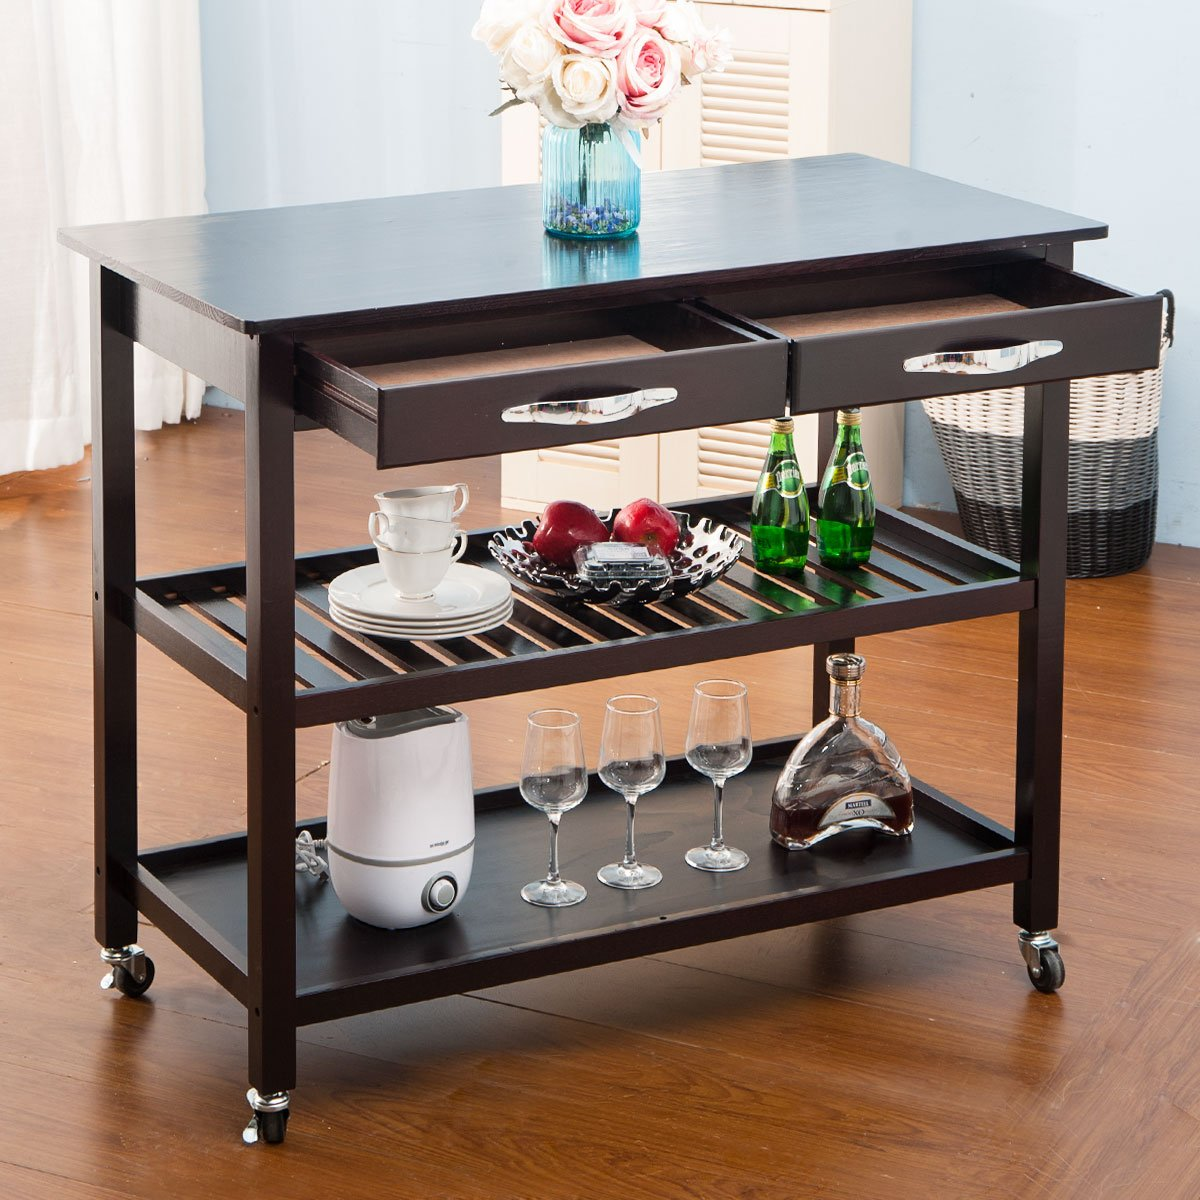 LZ LEISURE ZONE Rolling Kitchen Island Serving Cart Wood Trolley w Countertop, 2 Drawers, 2 Shelves and Lockable Wheels Dark Brown